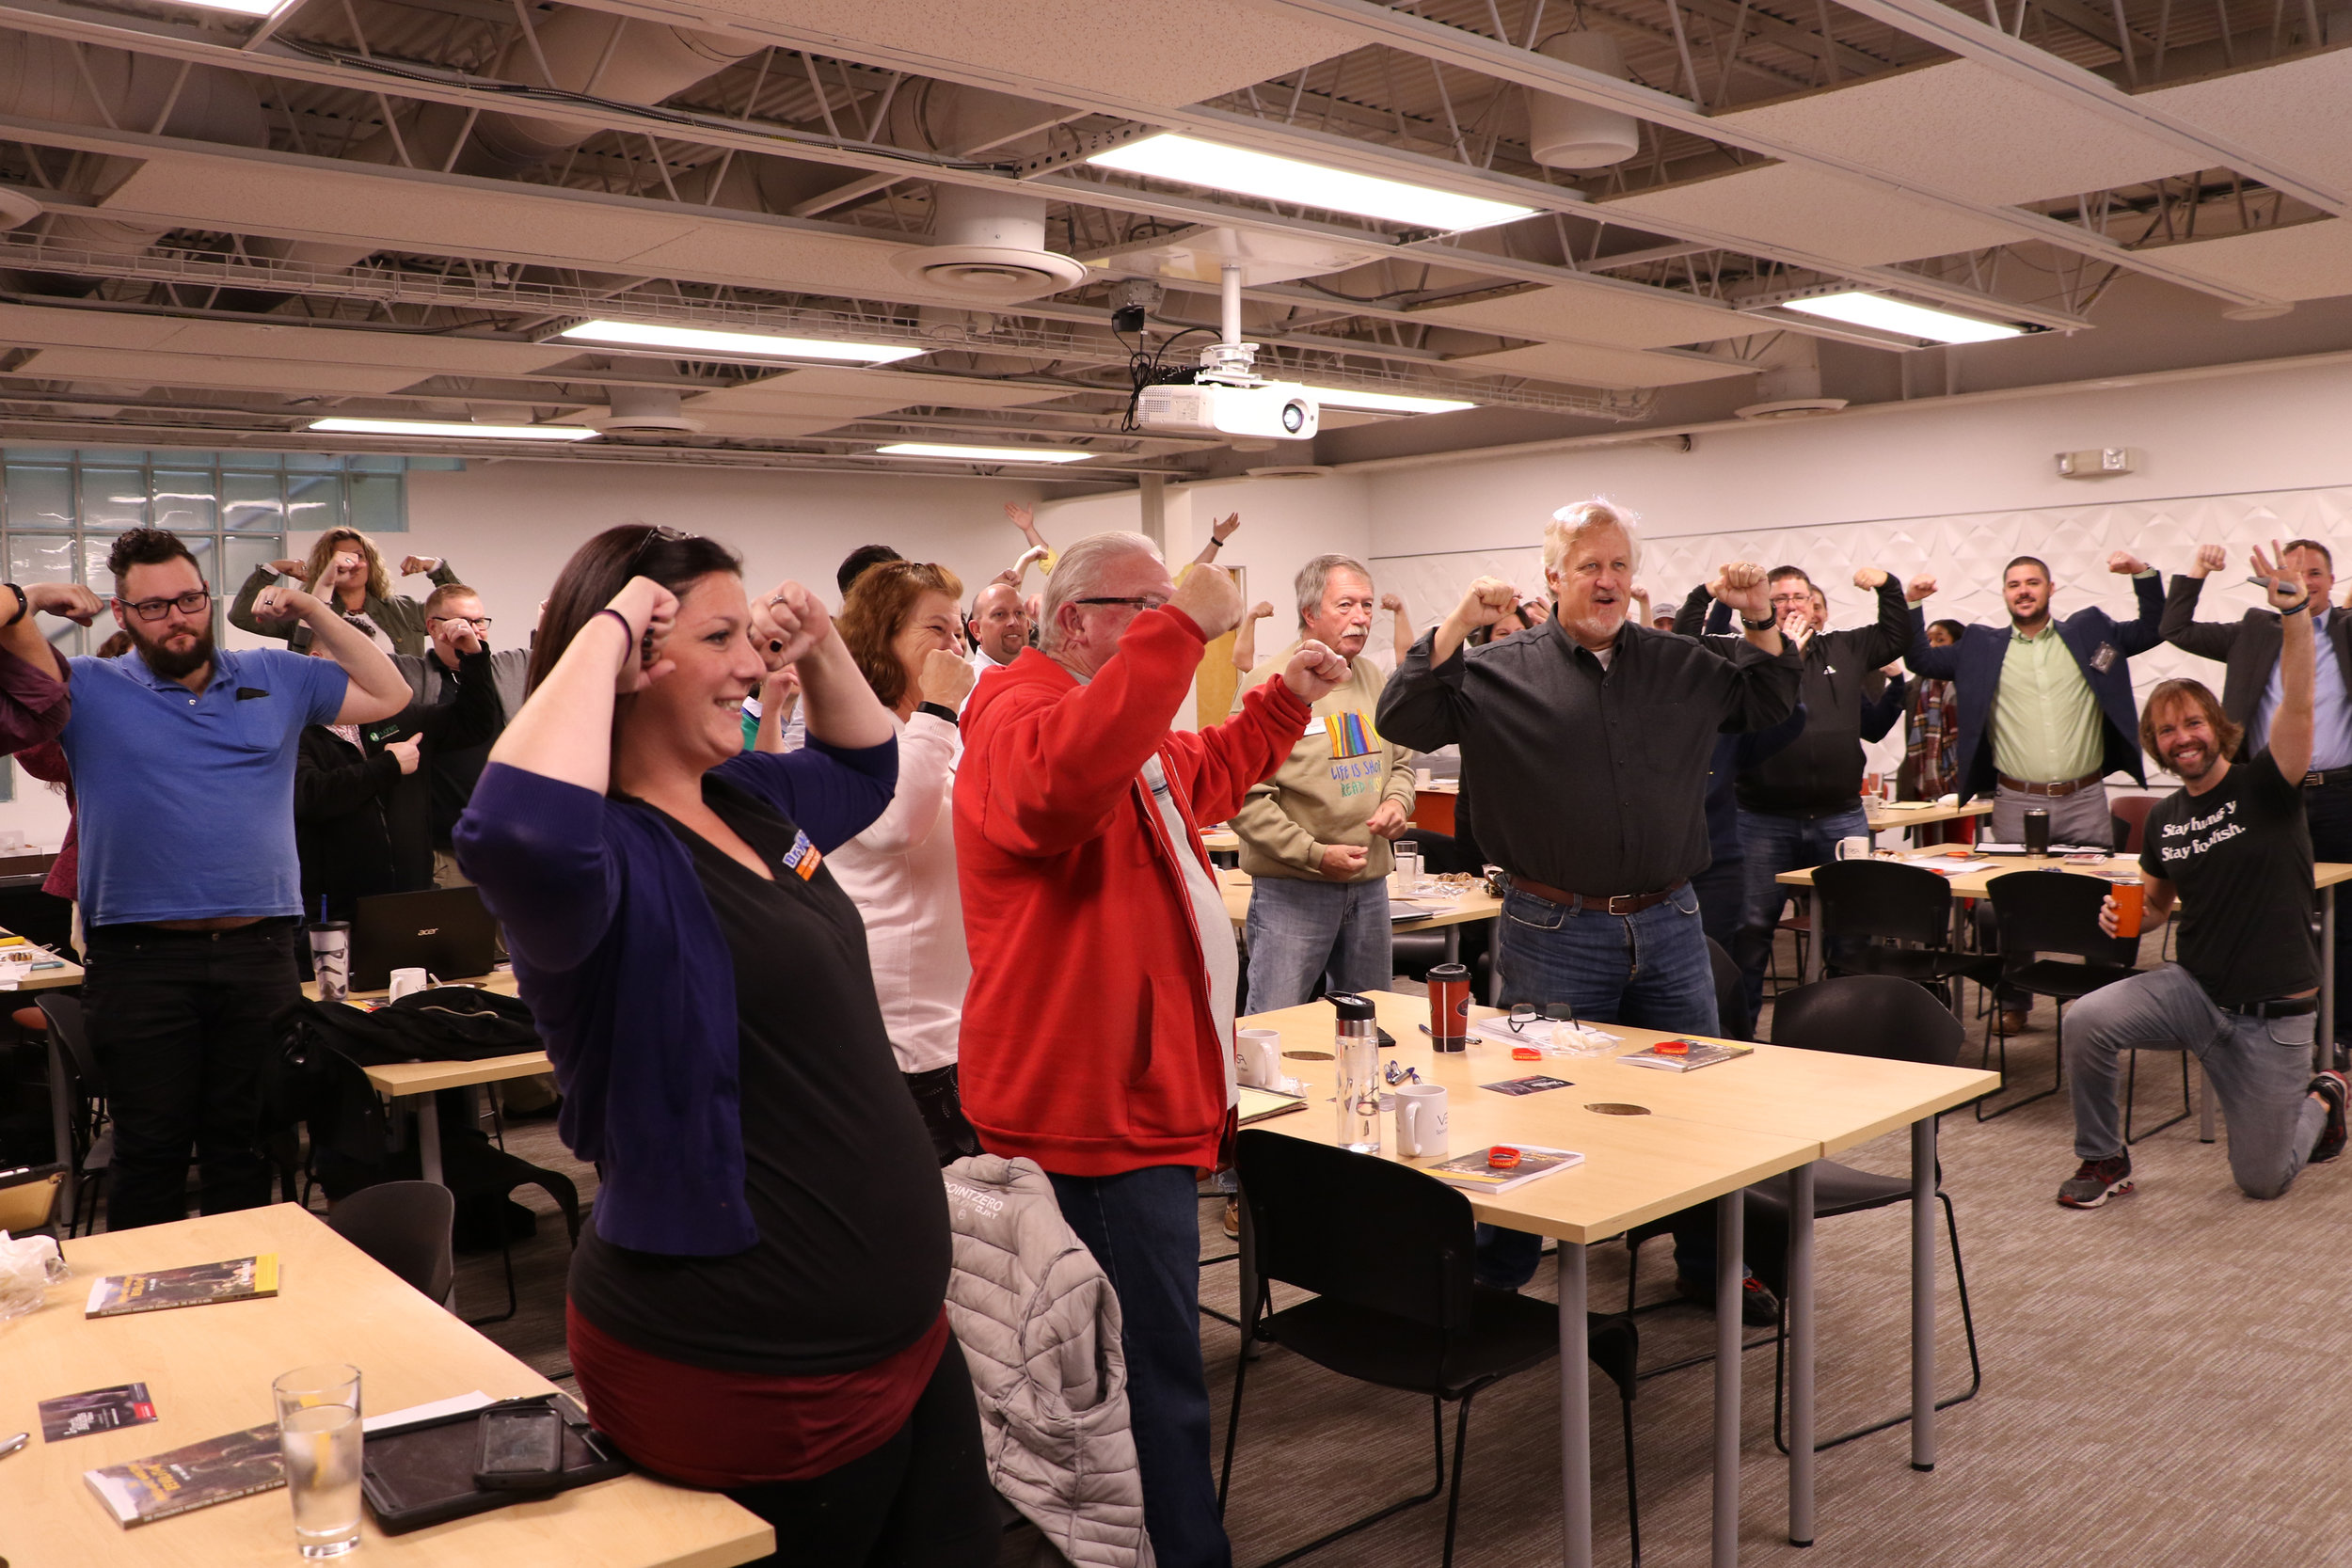 the marketing fun with mike community giving their best muscle flex after another amazing workshop!